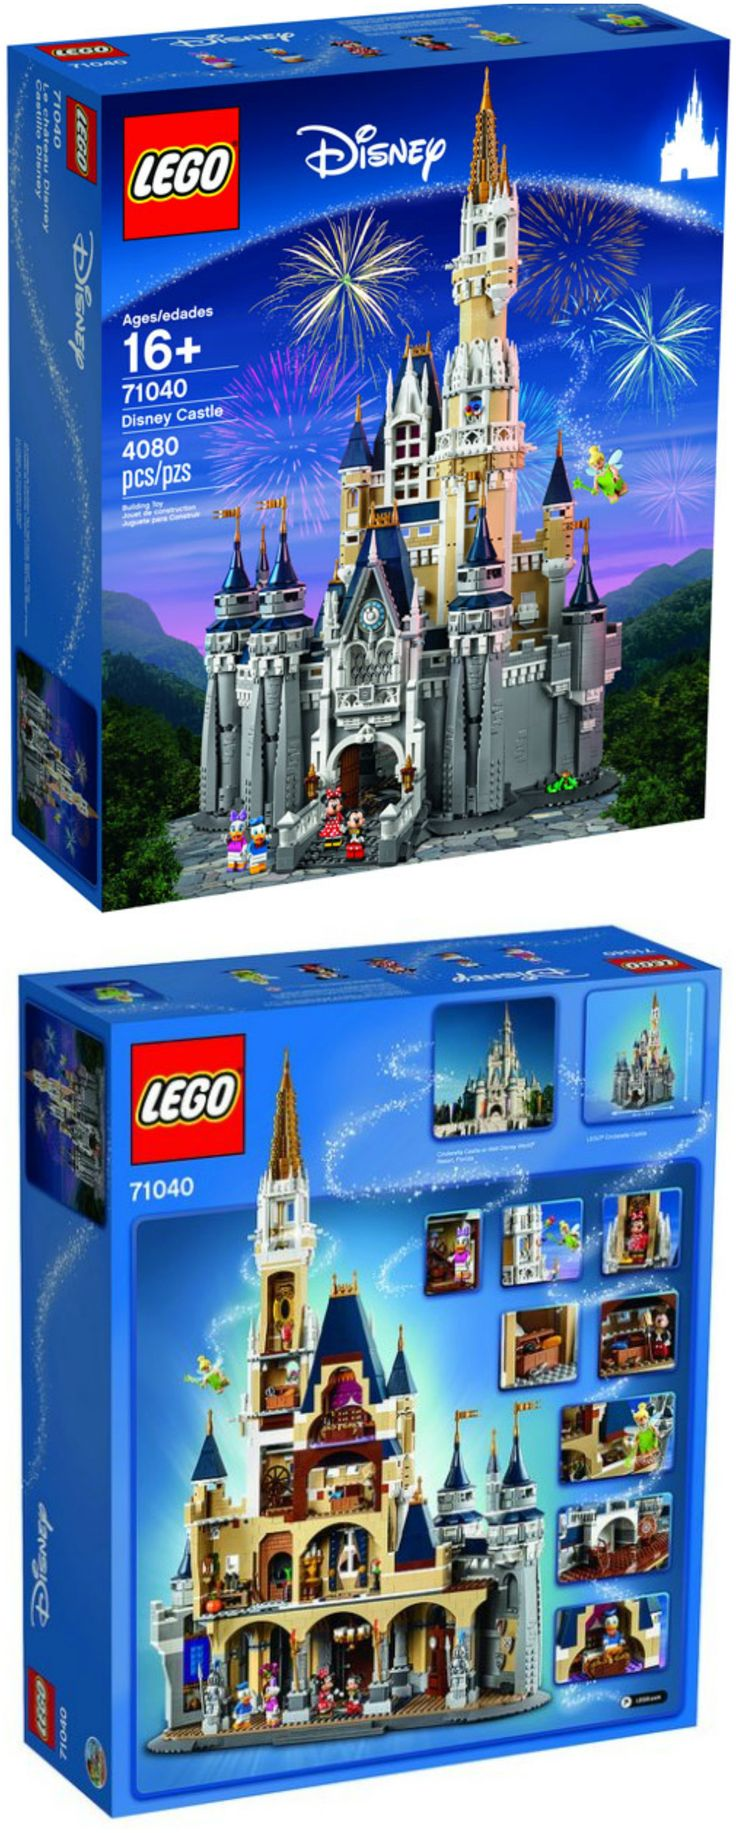 LOOK WHAT I FOUND: Lego Disney Castle Set 71040. Great gift idea for EVERY single Disney fan, be it man, woman or child. LOVE the details.